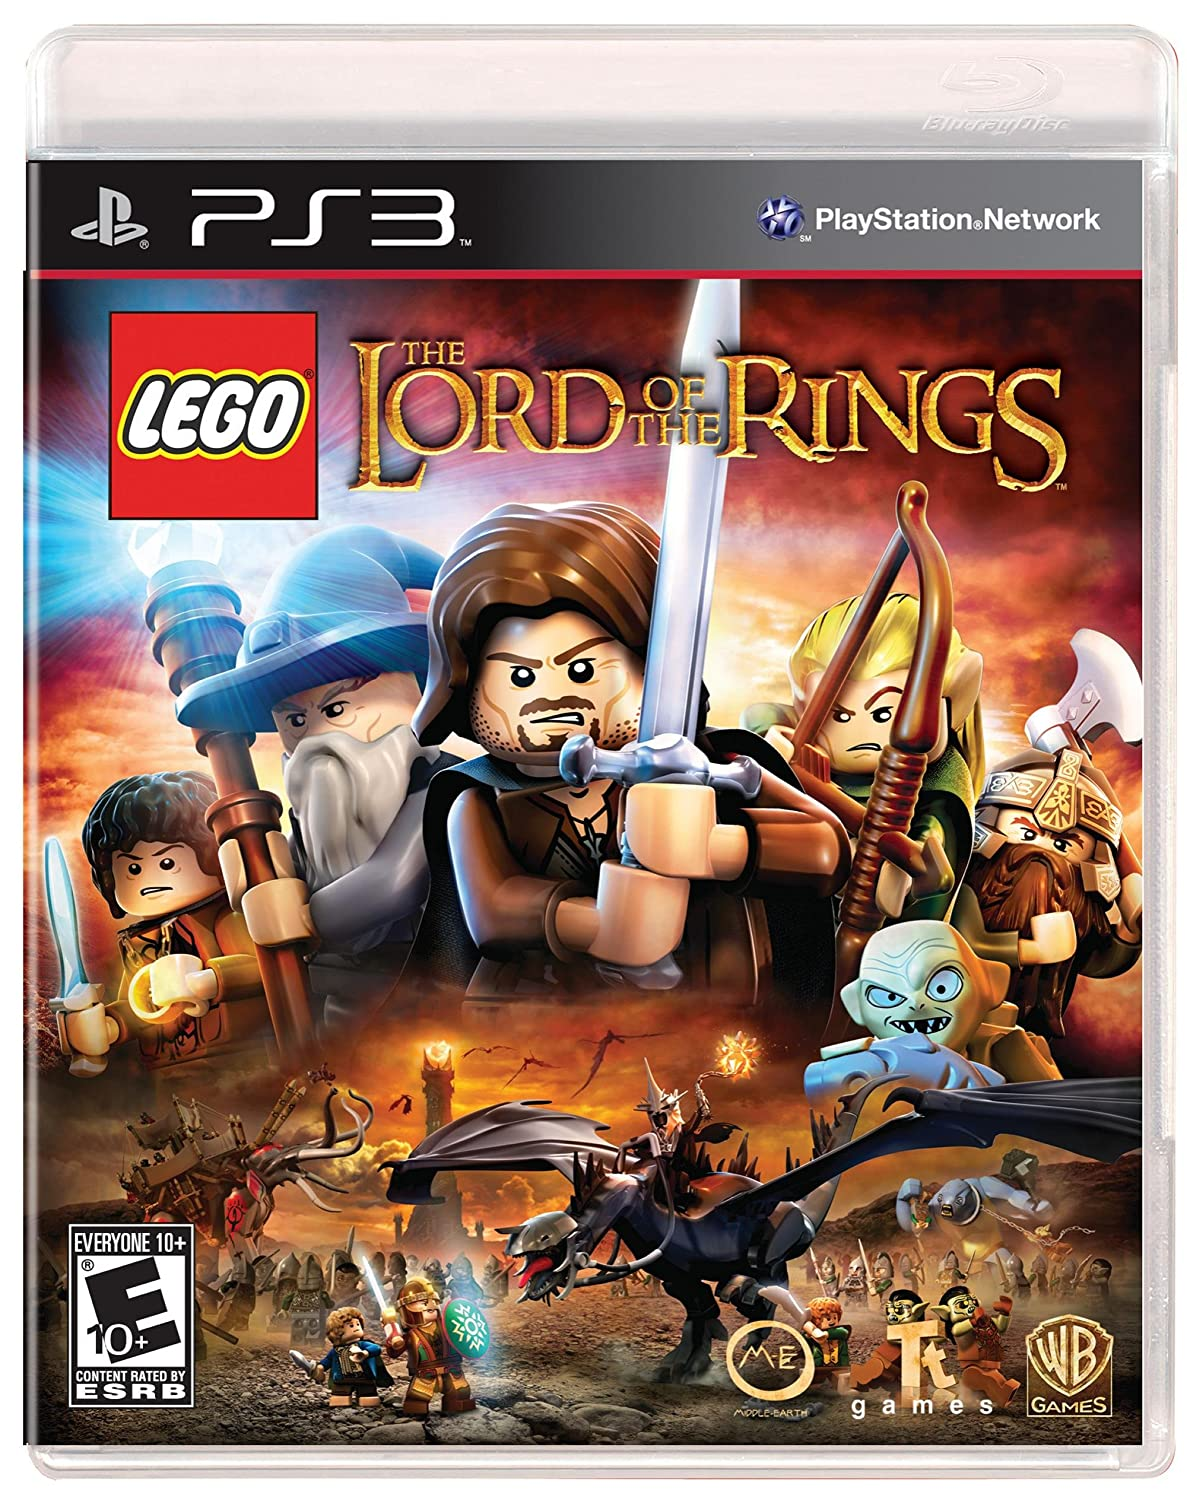 LEGO Lord of the Rings $19.99